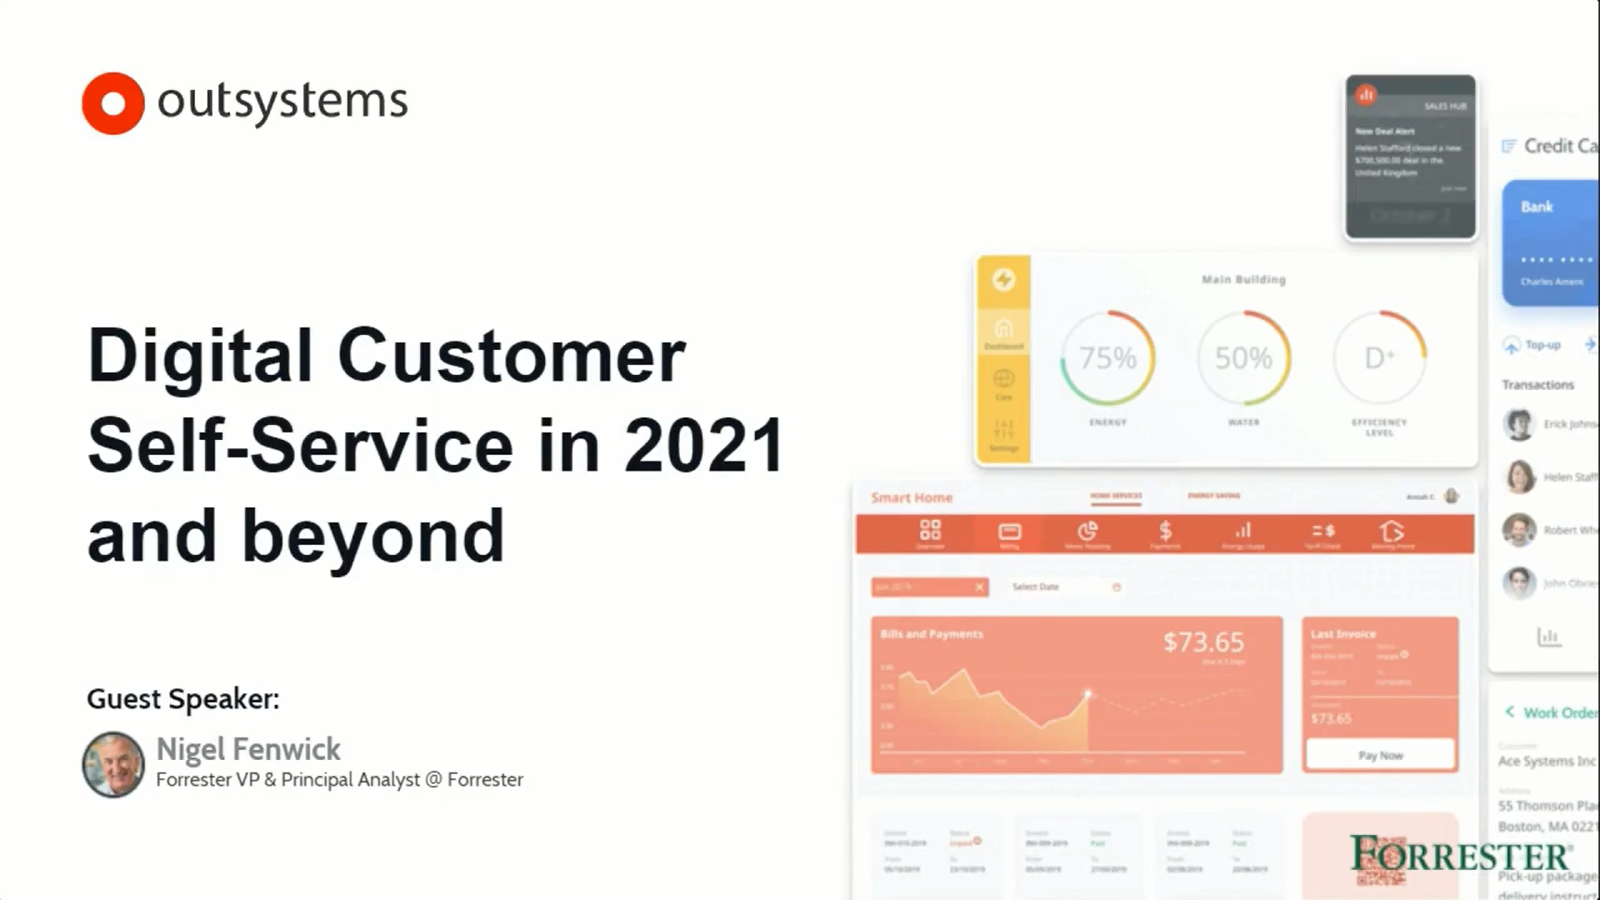 Digital Customer Self-Service in 2021 and Beyond